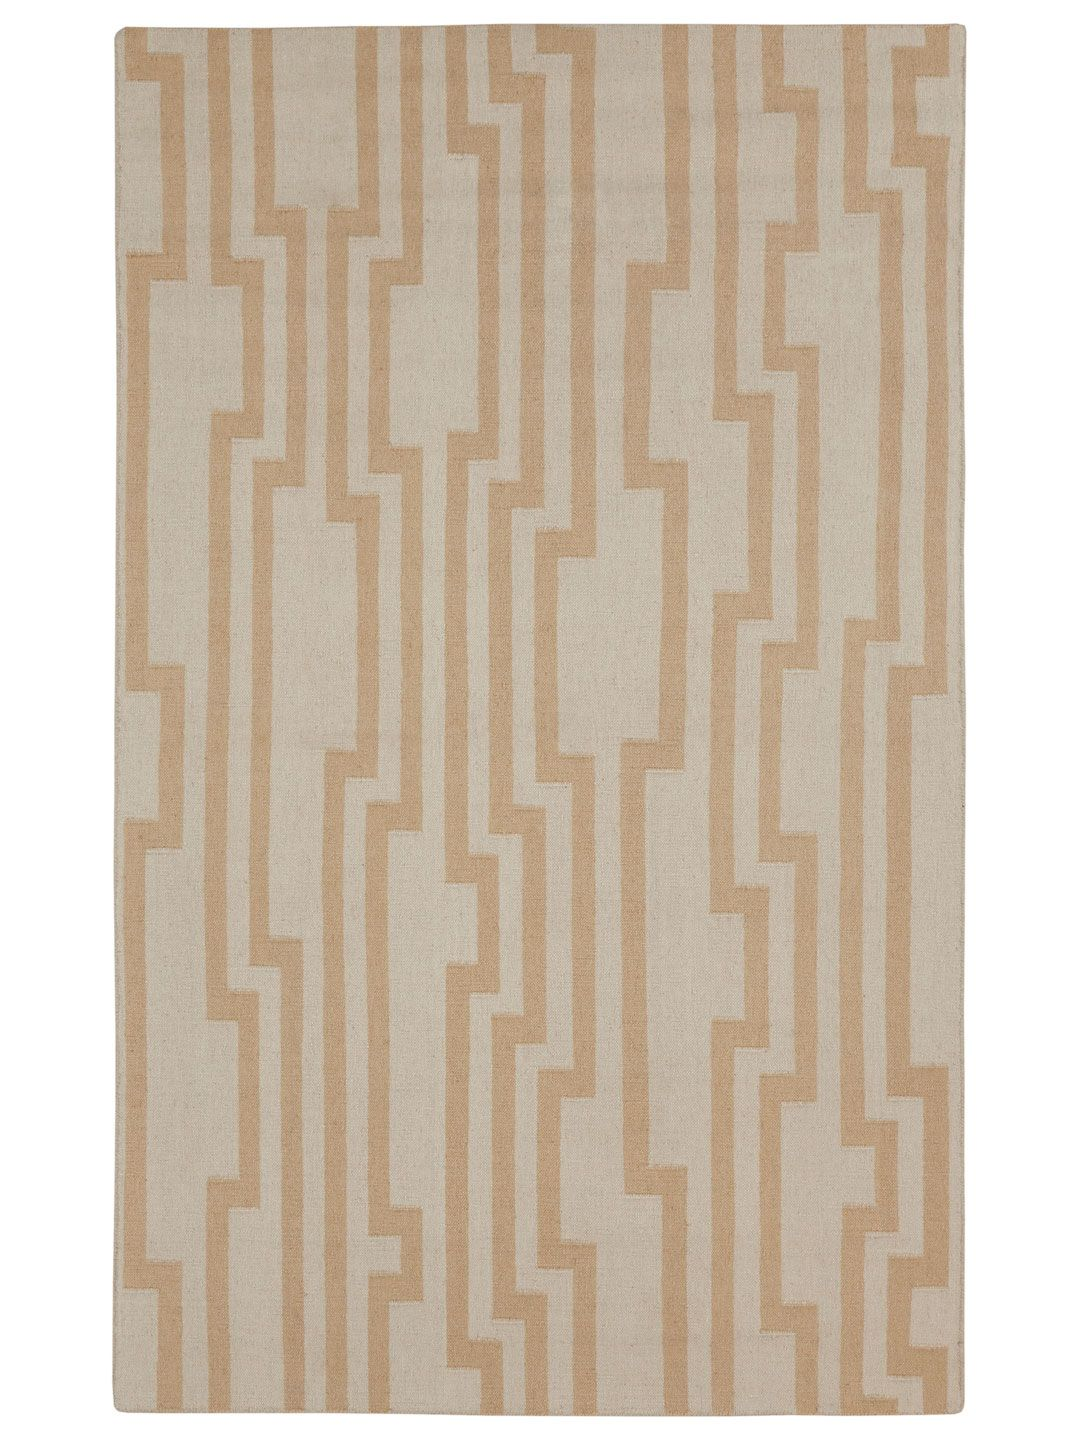 Market Place Handwoven Rug Area rugs, Wool area rugs